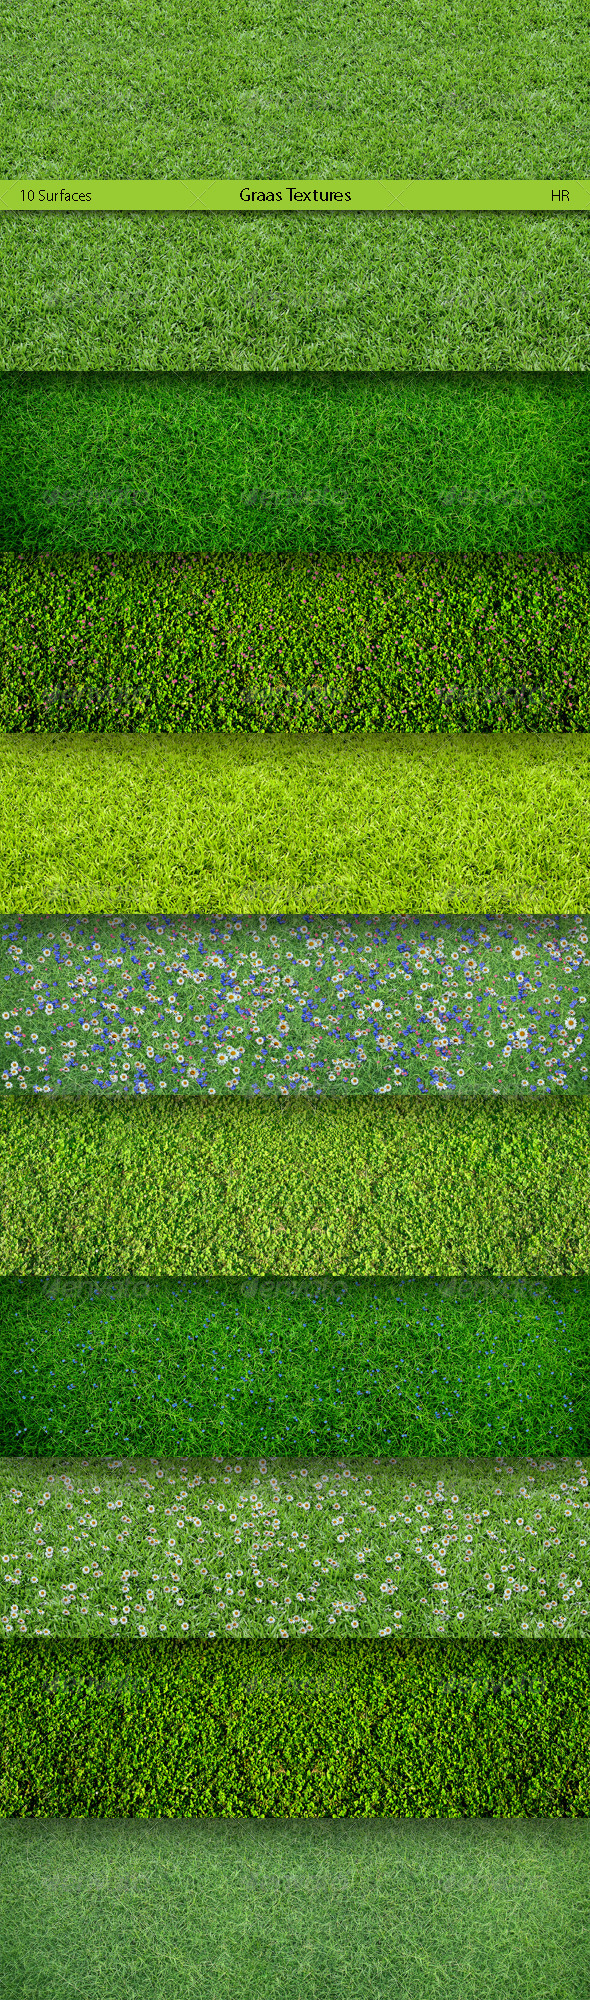 Grass Texture Graphics Designs Templates From Graphicriver